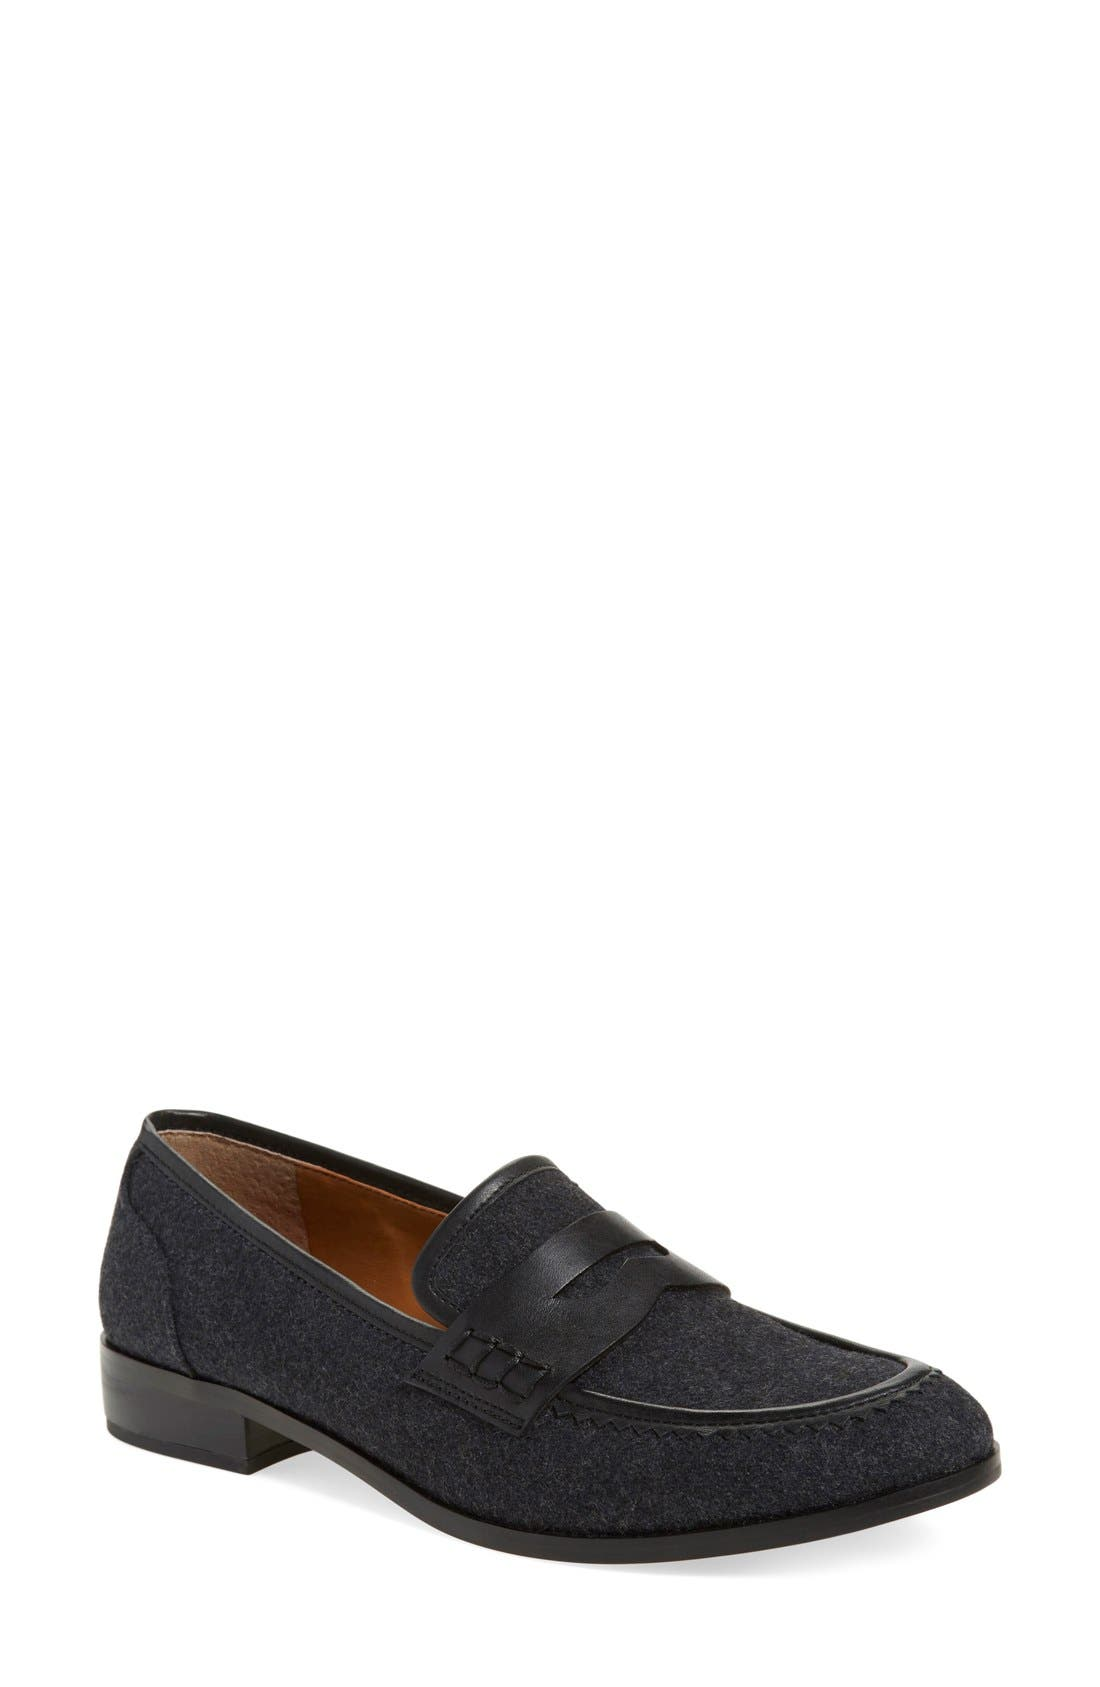 'Jolette' Penny Loafer,                             Main thumbnail 14, color,